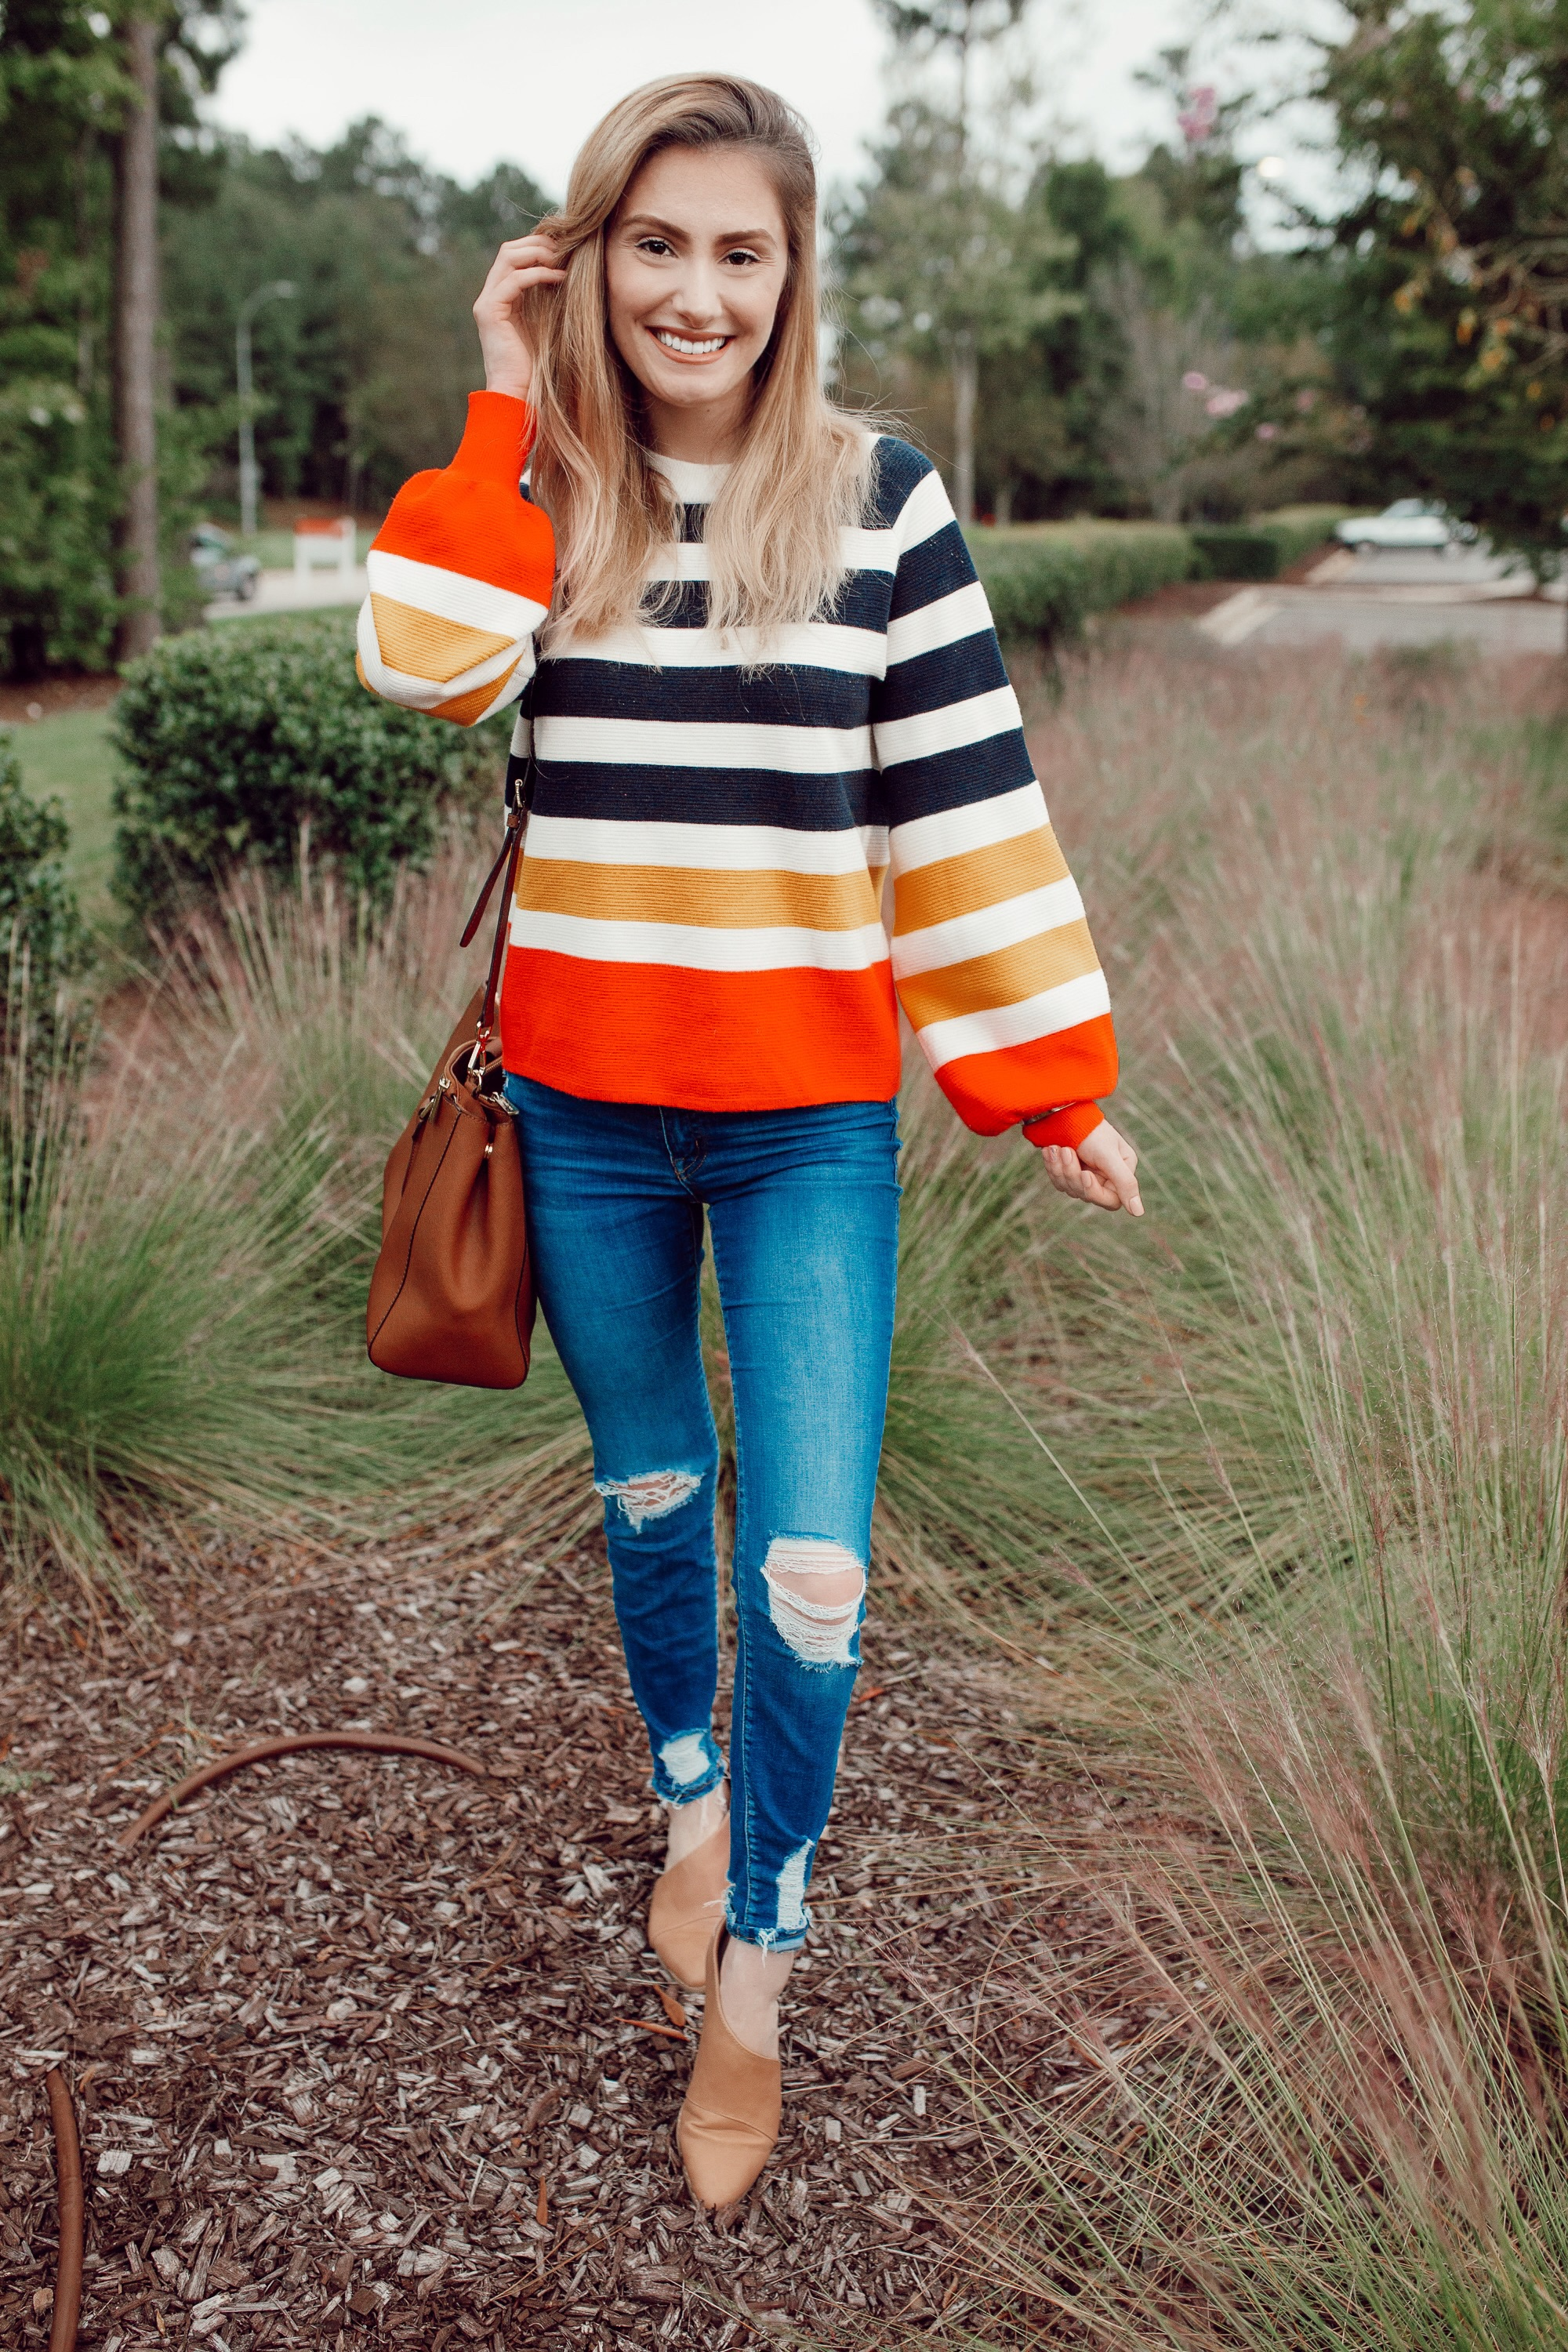 Trendy Women's Sweaters 2018 | Fall & Winter Sweaters Under $100 by North Carolina fashion and lifestyle blogger Jessica Linn